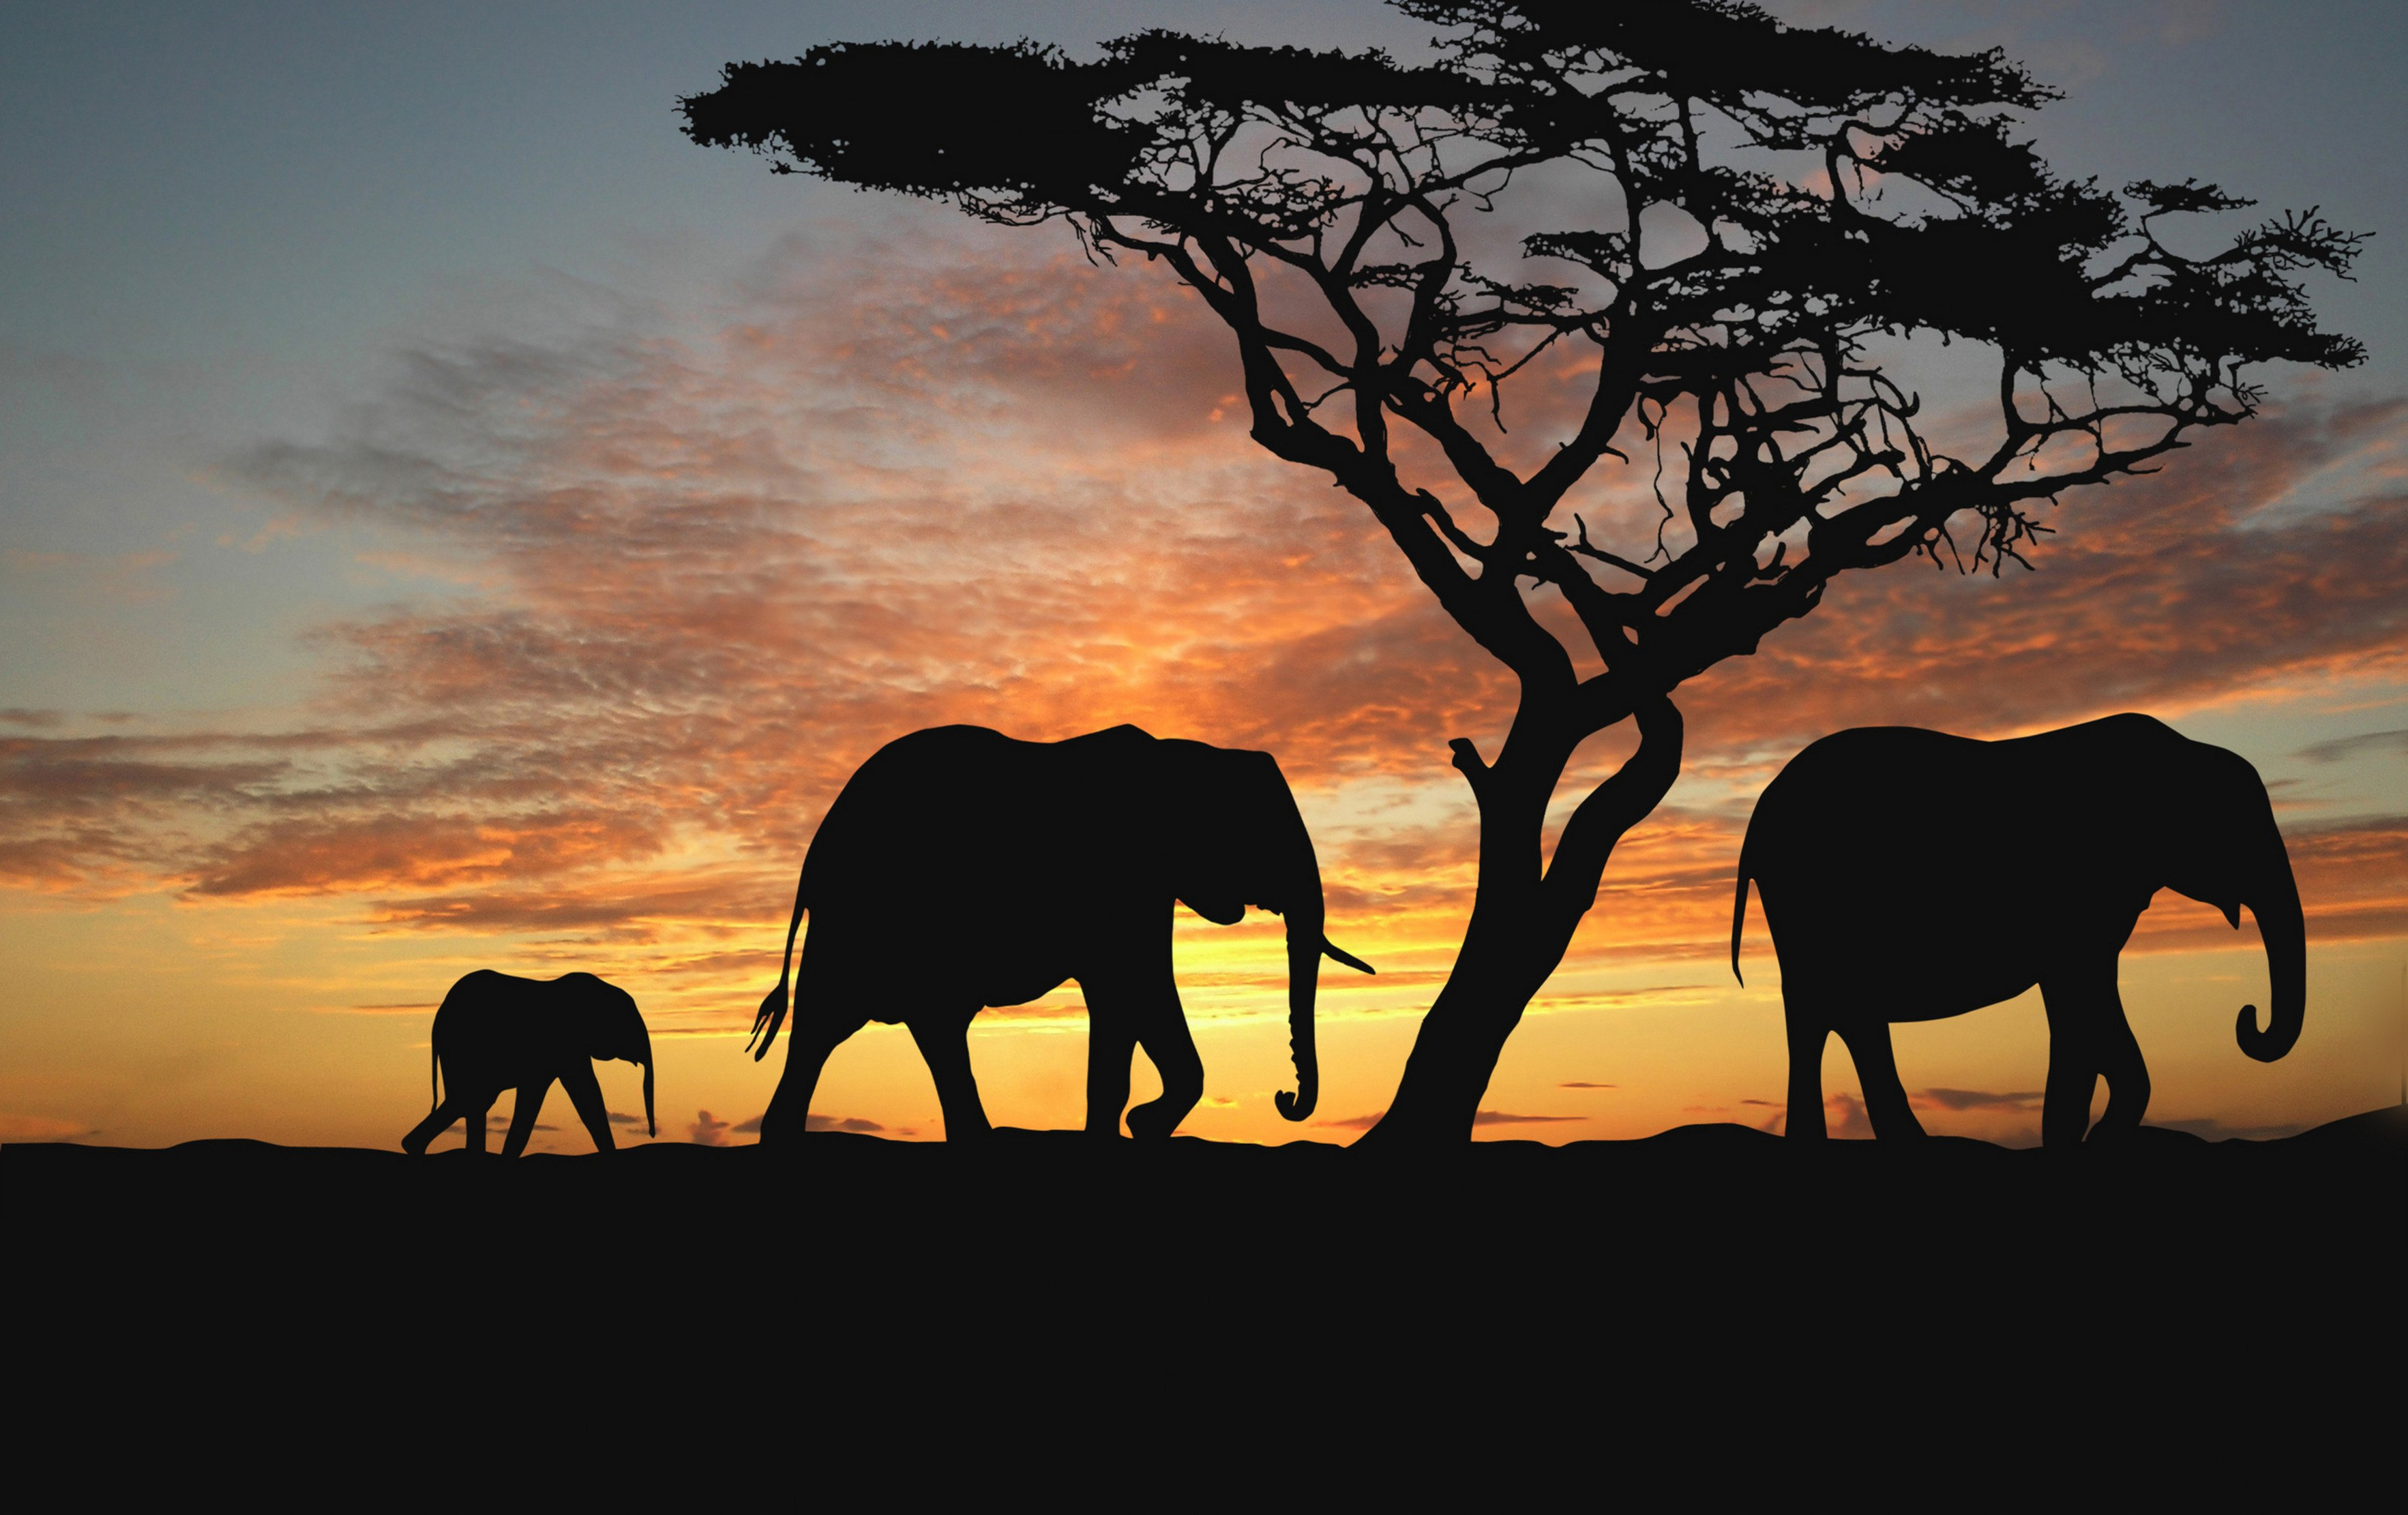 sunset africa elephants nature animals wallpapers evening africa